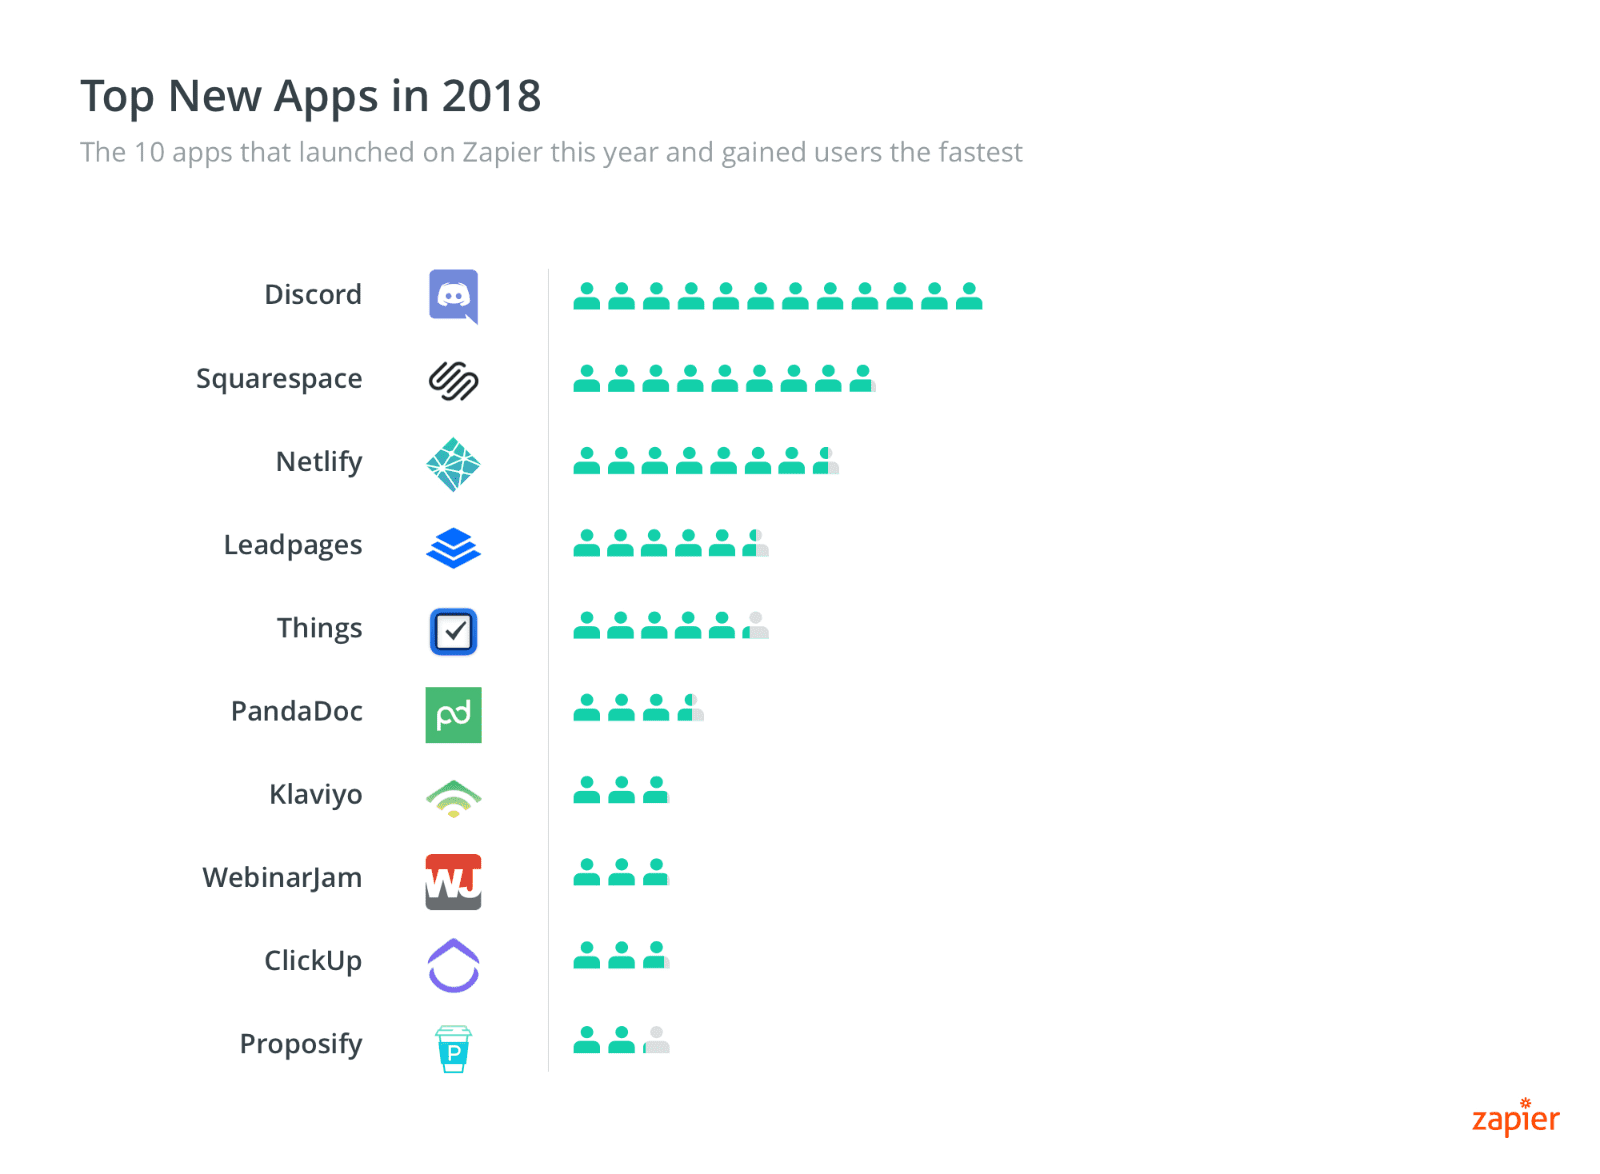 Zapier Top New Apps of 2018